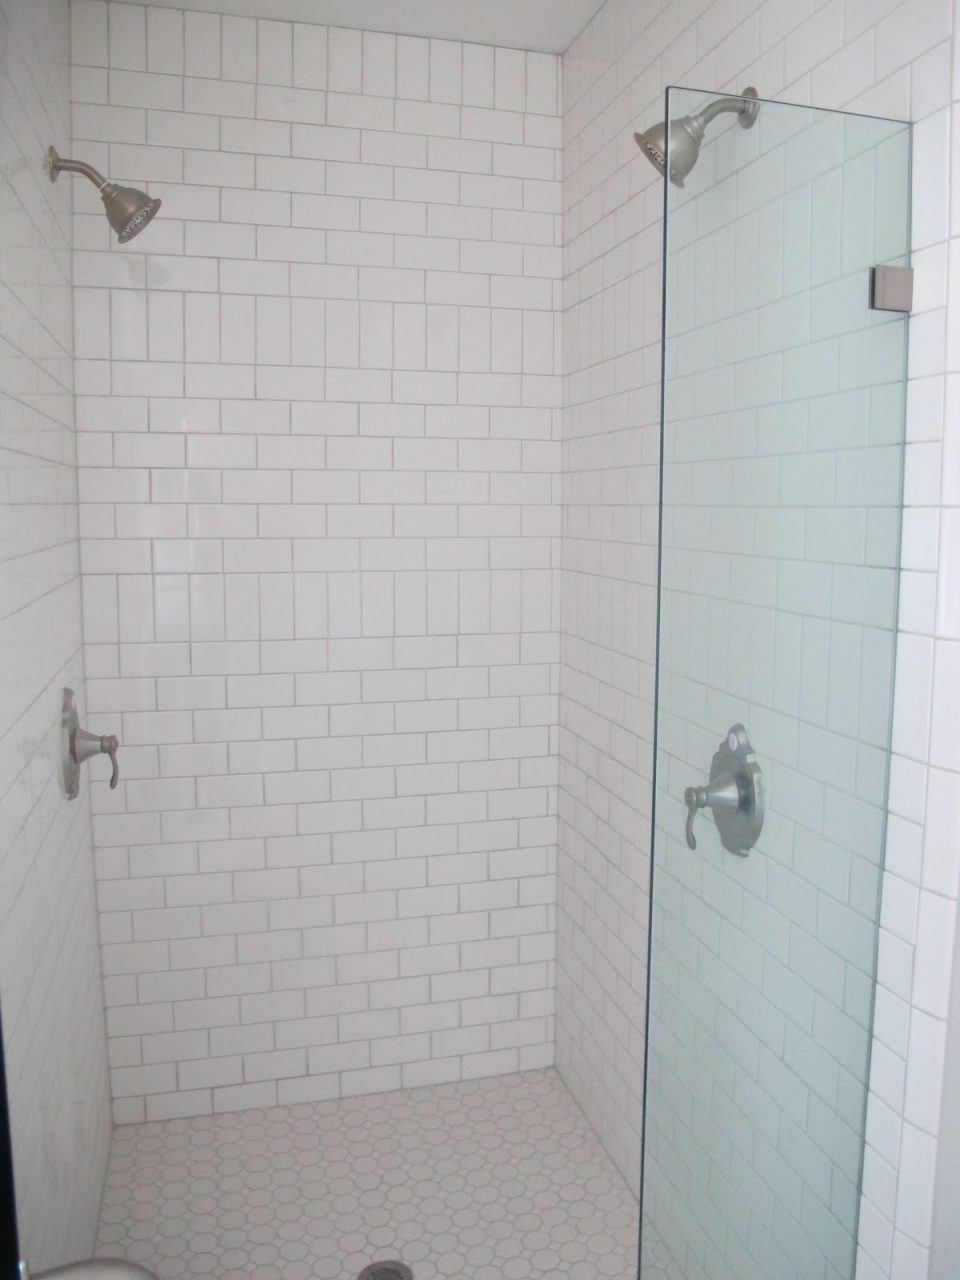 White Subway Tile Bathroom White Subway Tile With Shower Pebble Tile